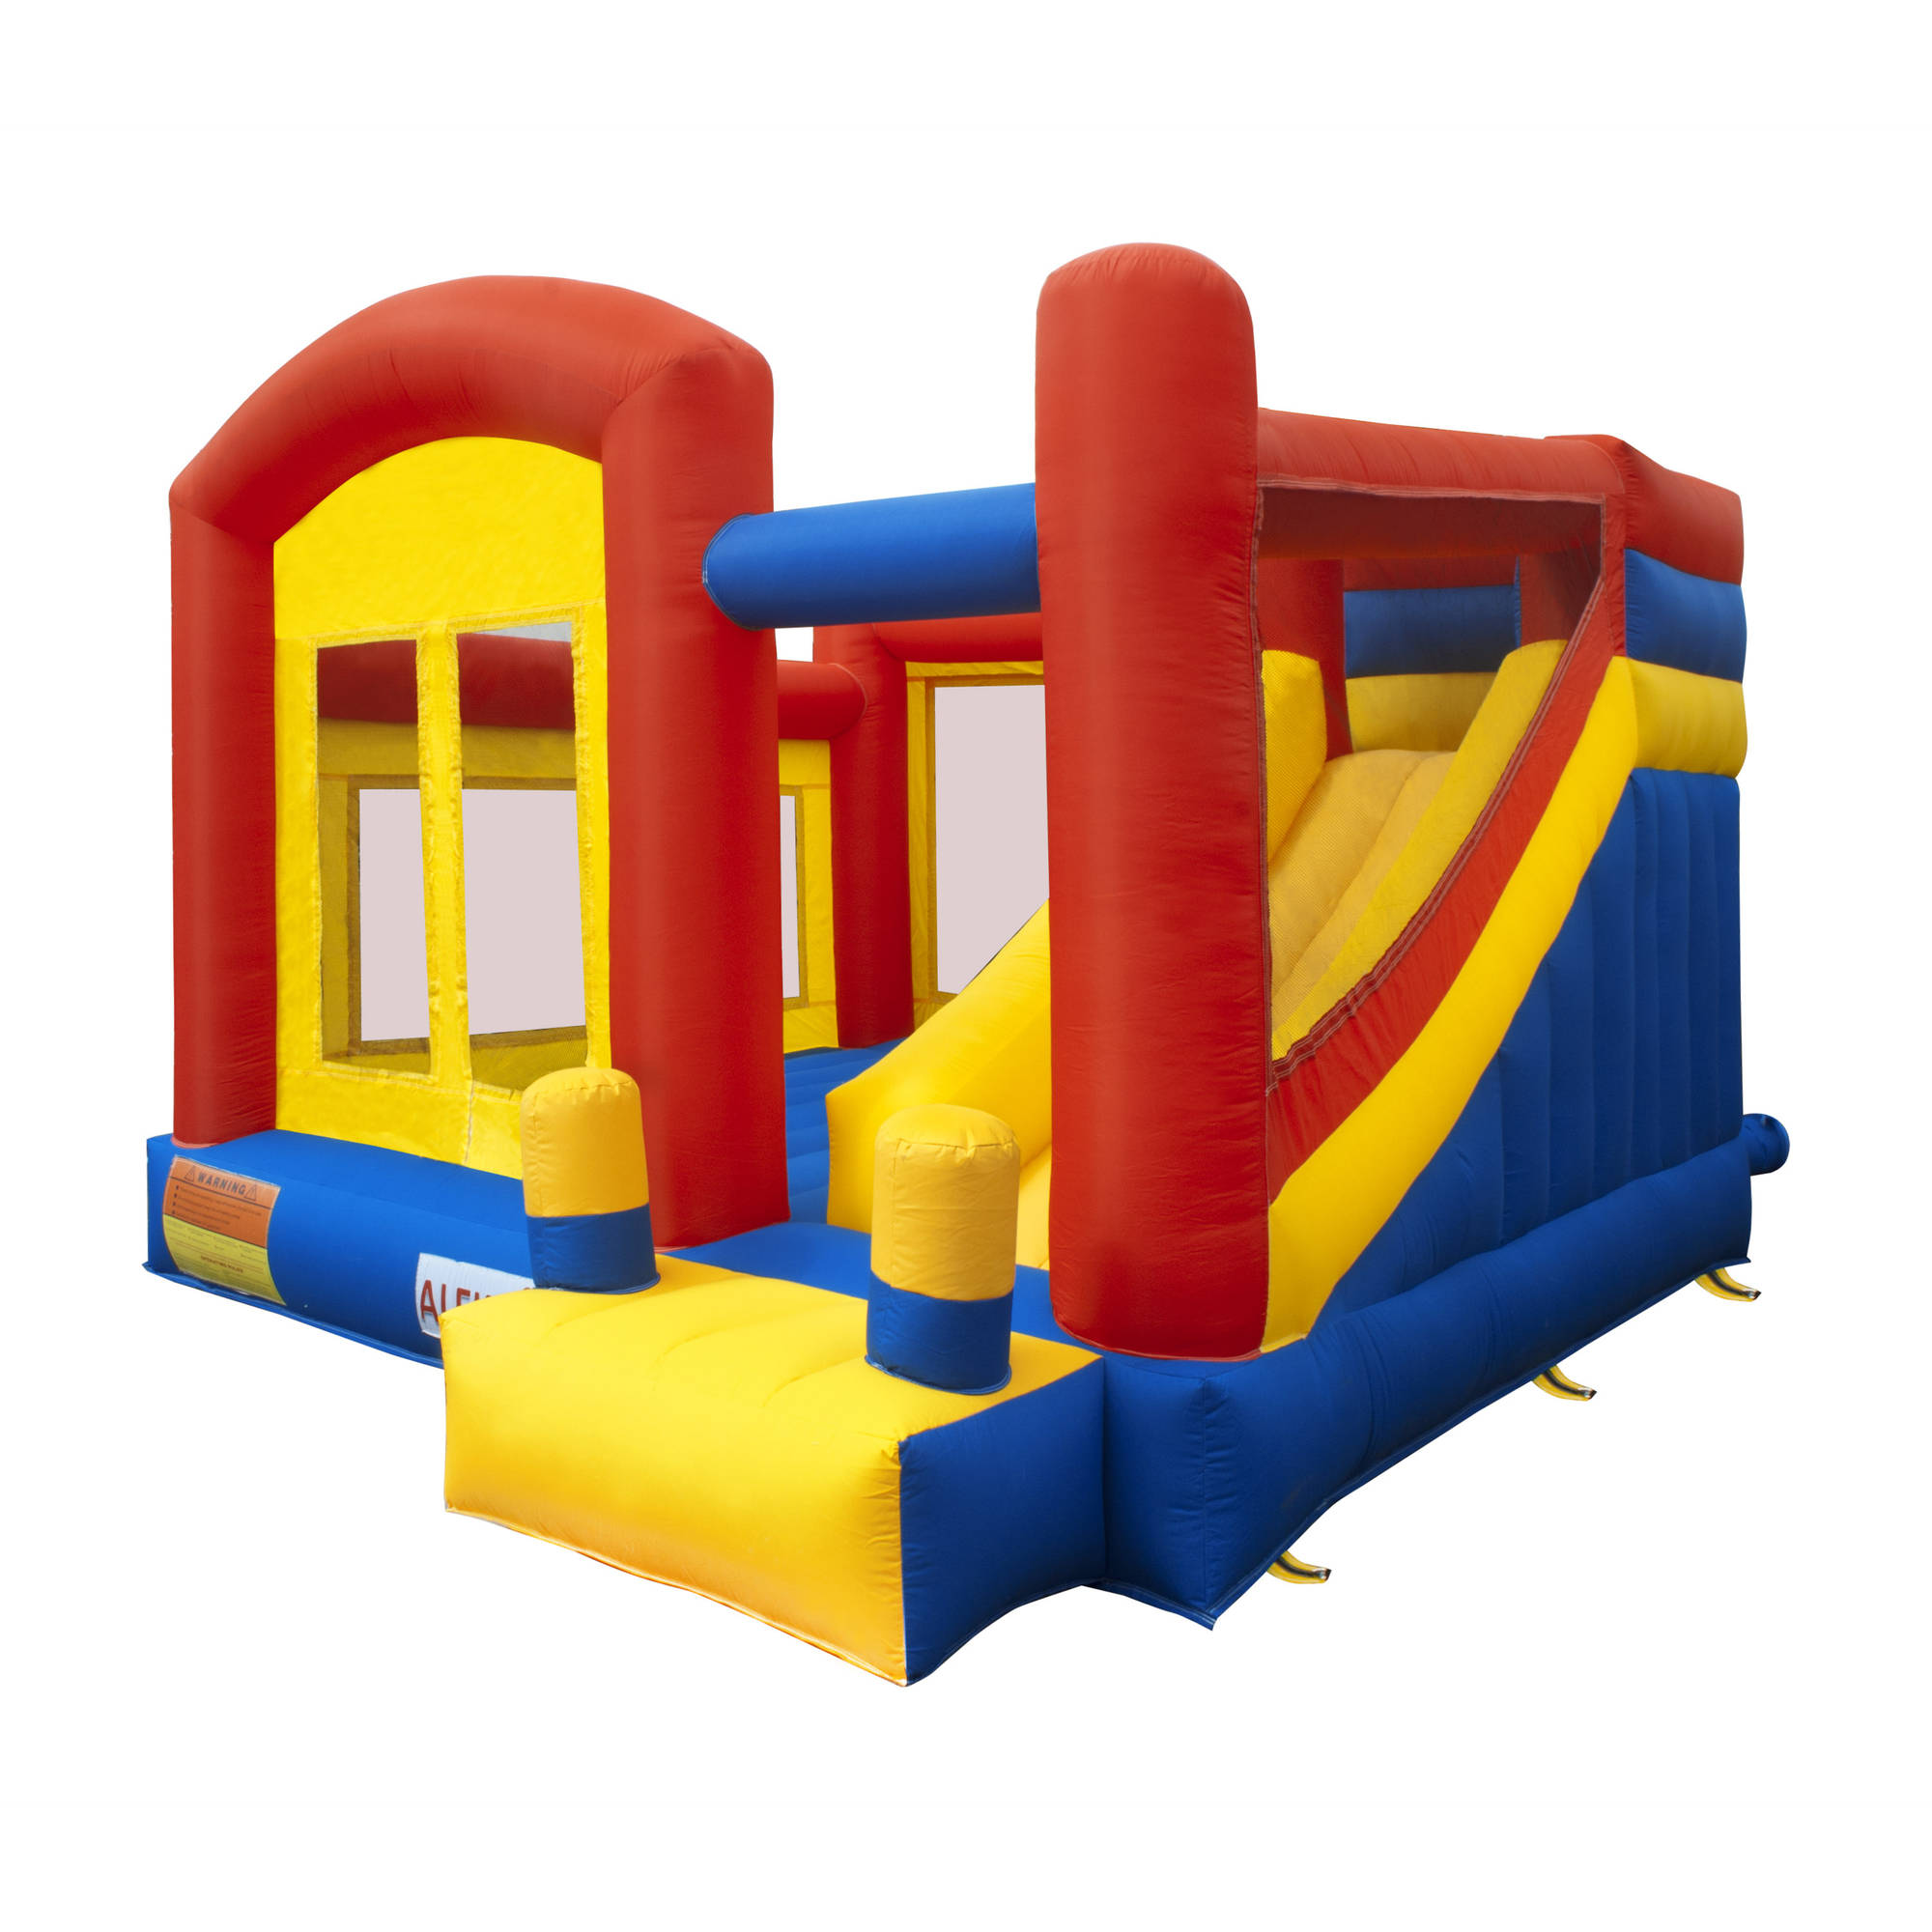 aleko bhpground large bounce house jump and slide bouncer inflatable bouncy playhouse 13u0027 x - Water Slide Bounce House